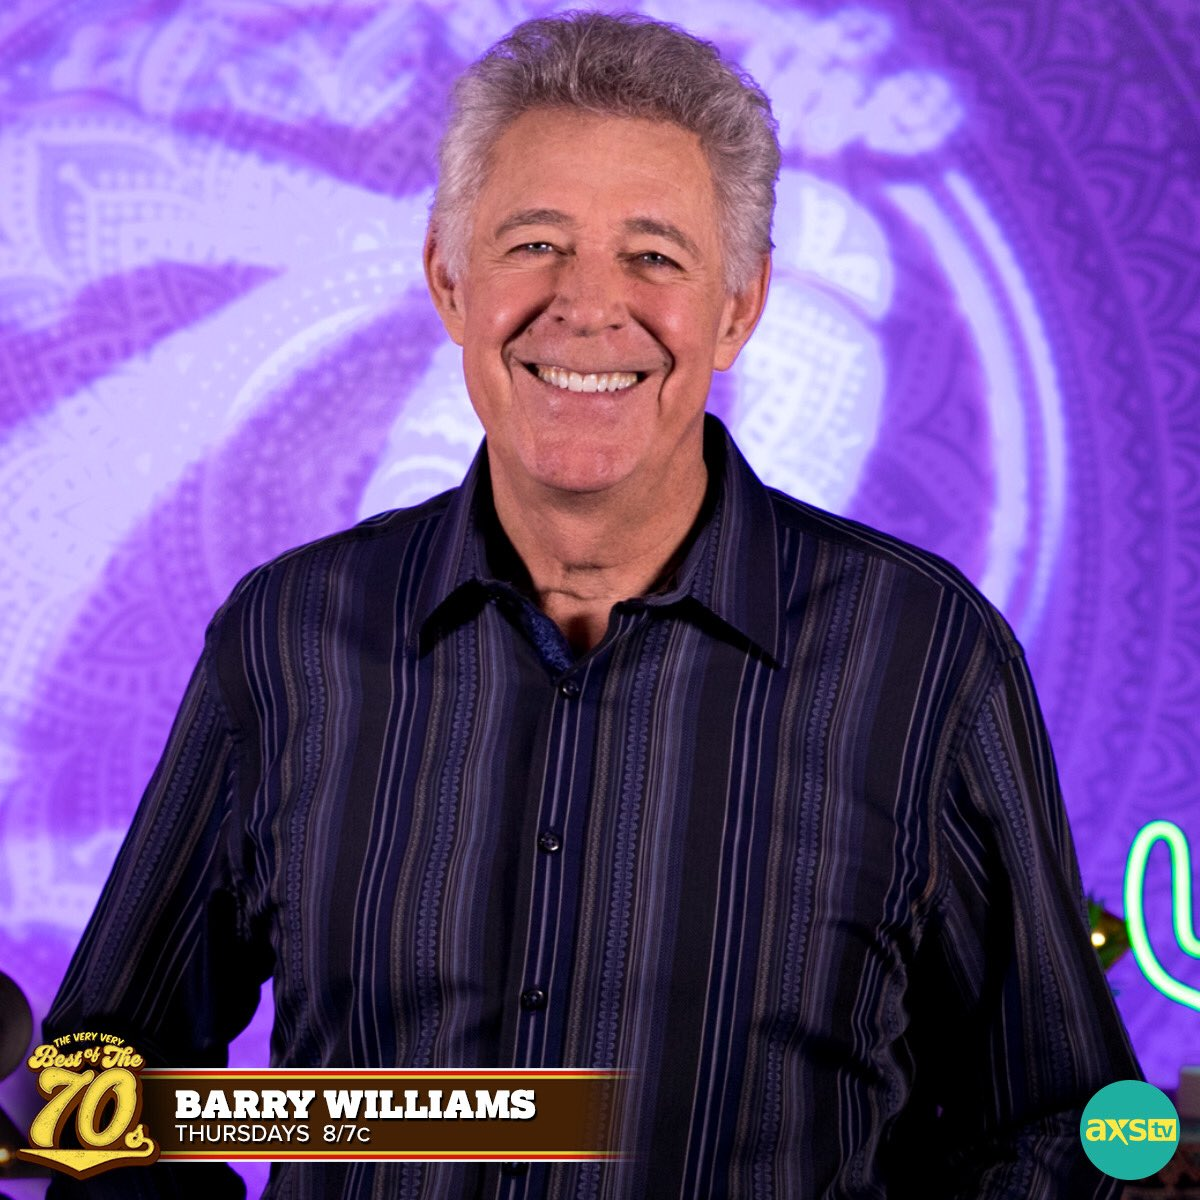 Watch The Very Very Best of the 70s, Tonight at 8/7C on ⁦@AXSTV⁩ #AXSTV #BarryWilliams #groovy